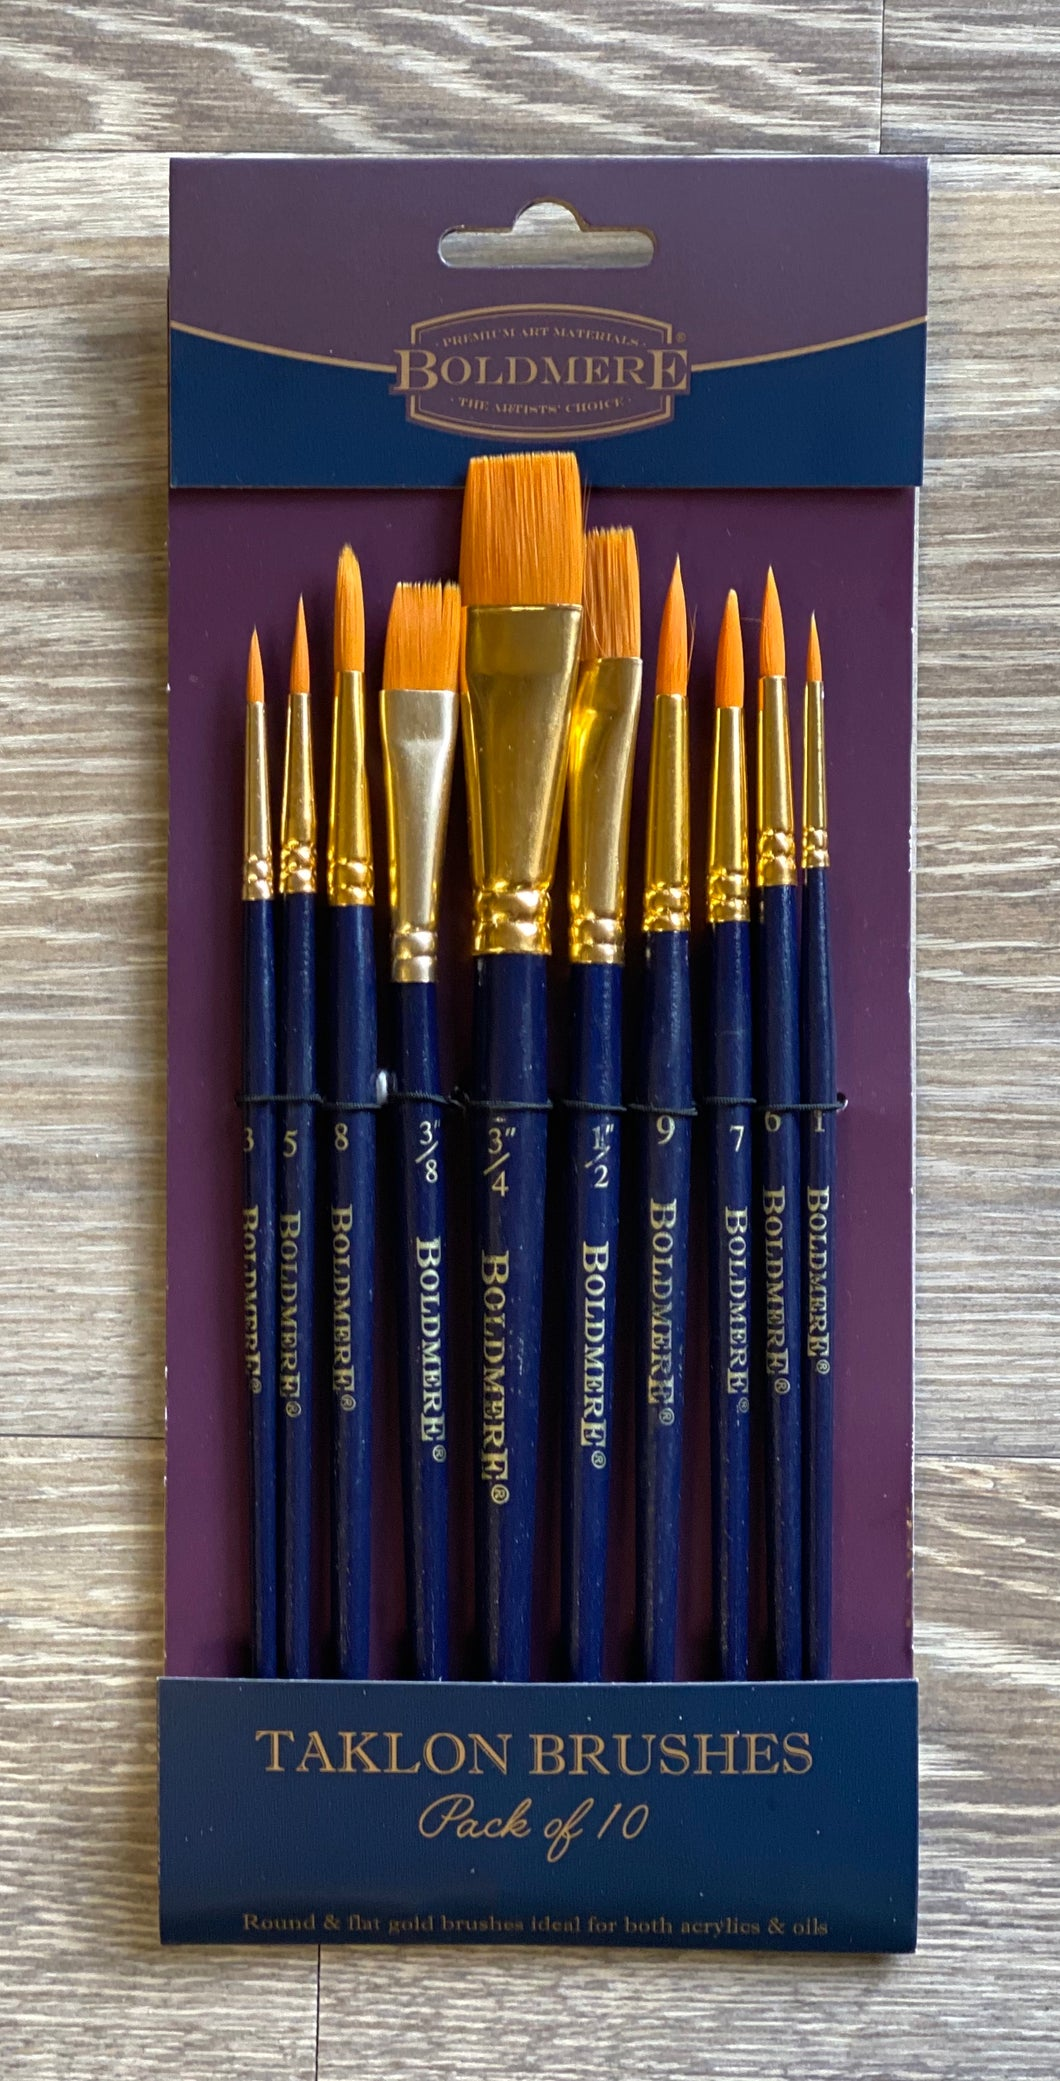 Set of 10 Taklon Artist Brushes